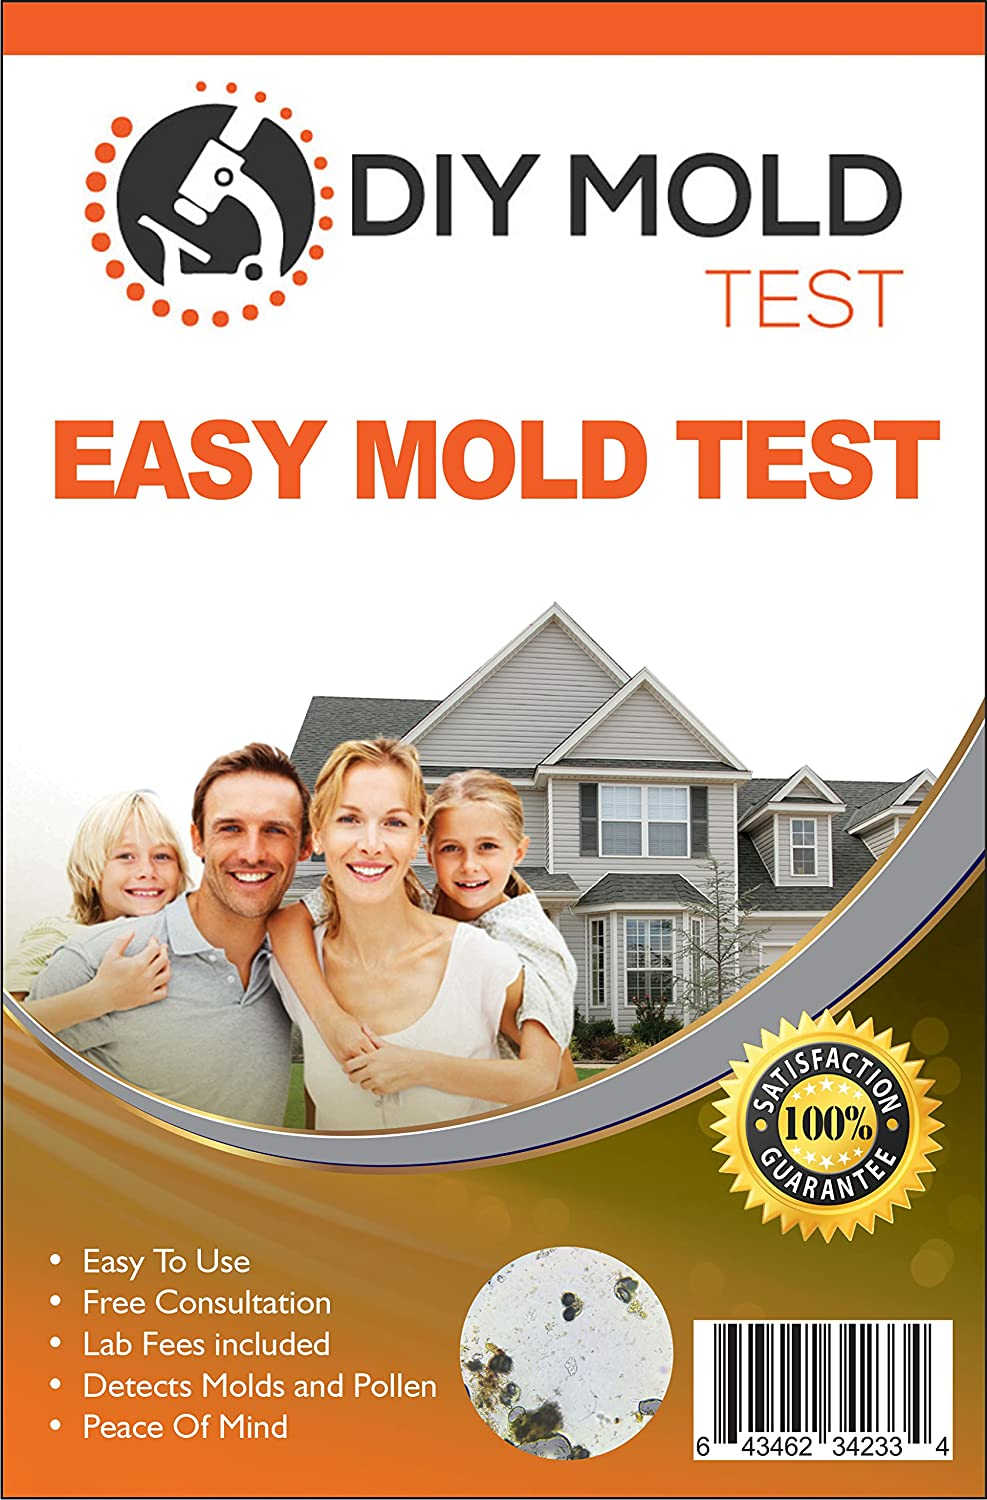 diy mold test mold testing kit 3 tests lab analysis and expert included amazoncom